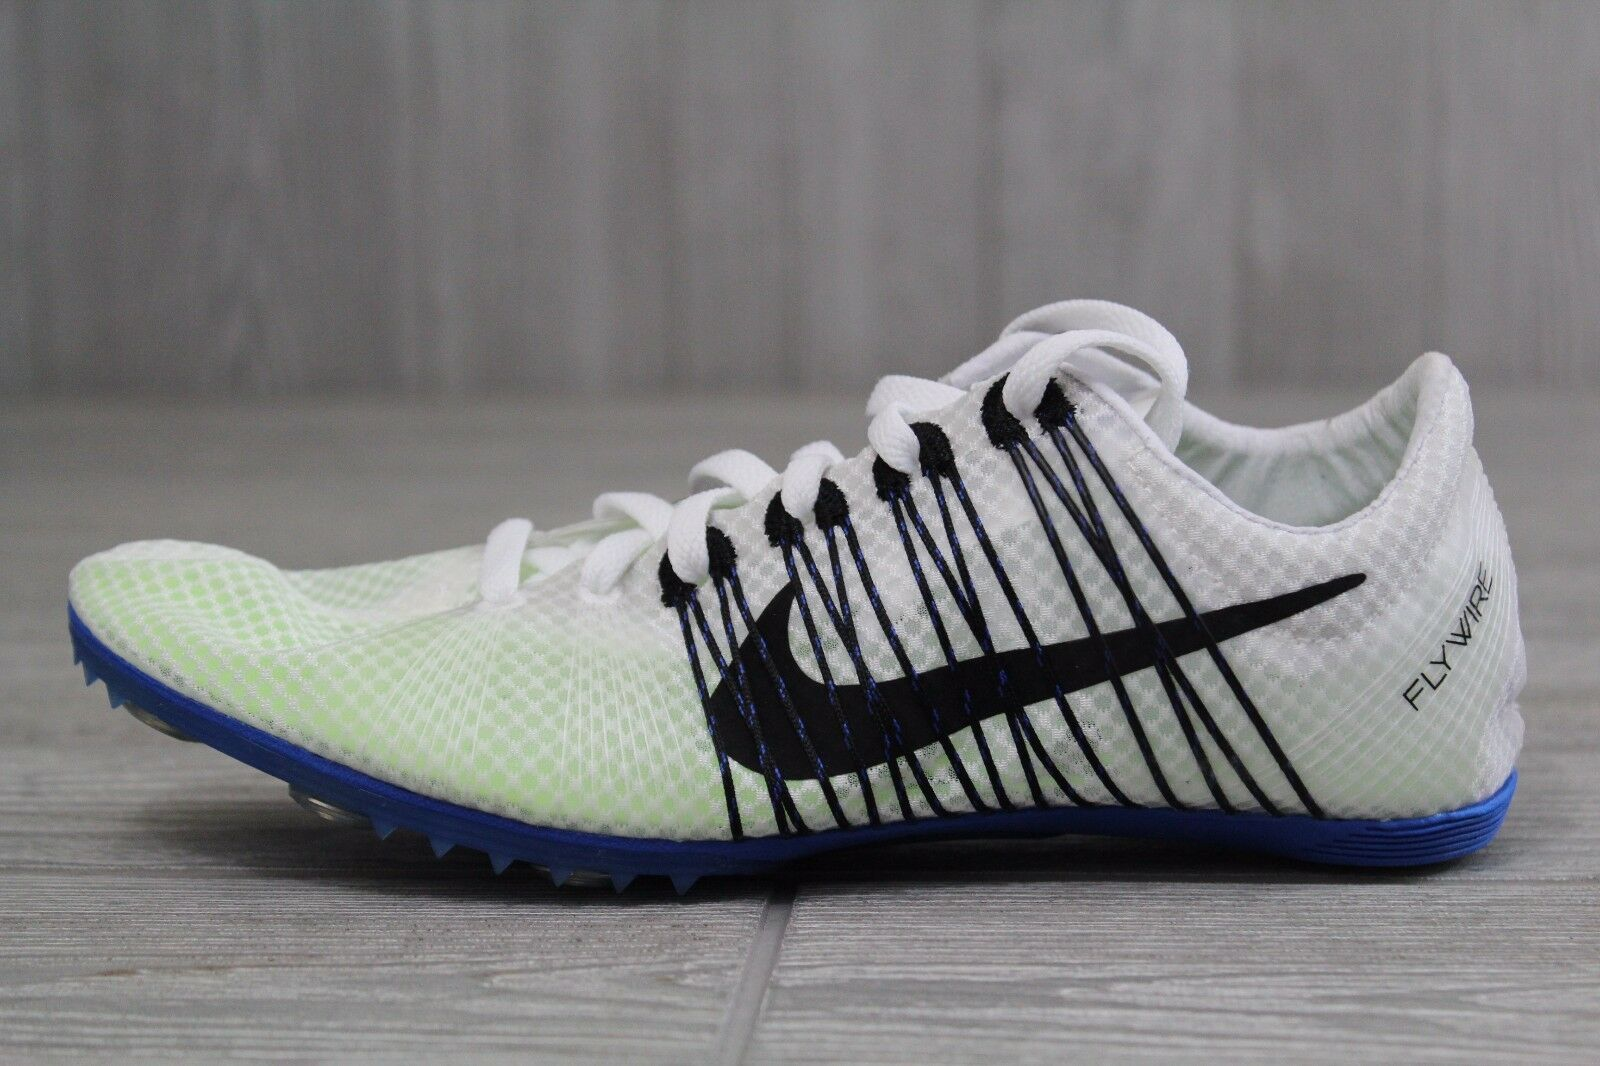 19 New Nike Zoom Victory 2 Track Spikes White/Blue Comfortable Cheap women's shoes women's shoes